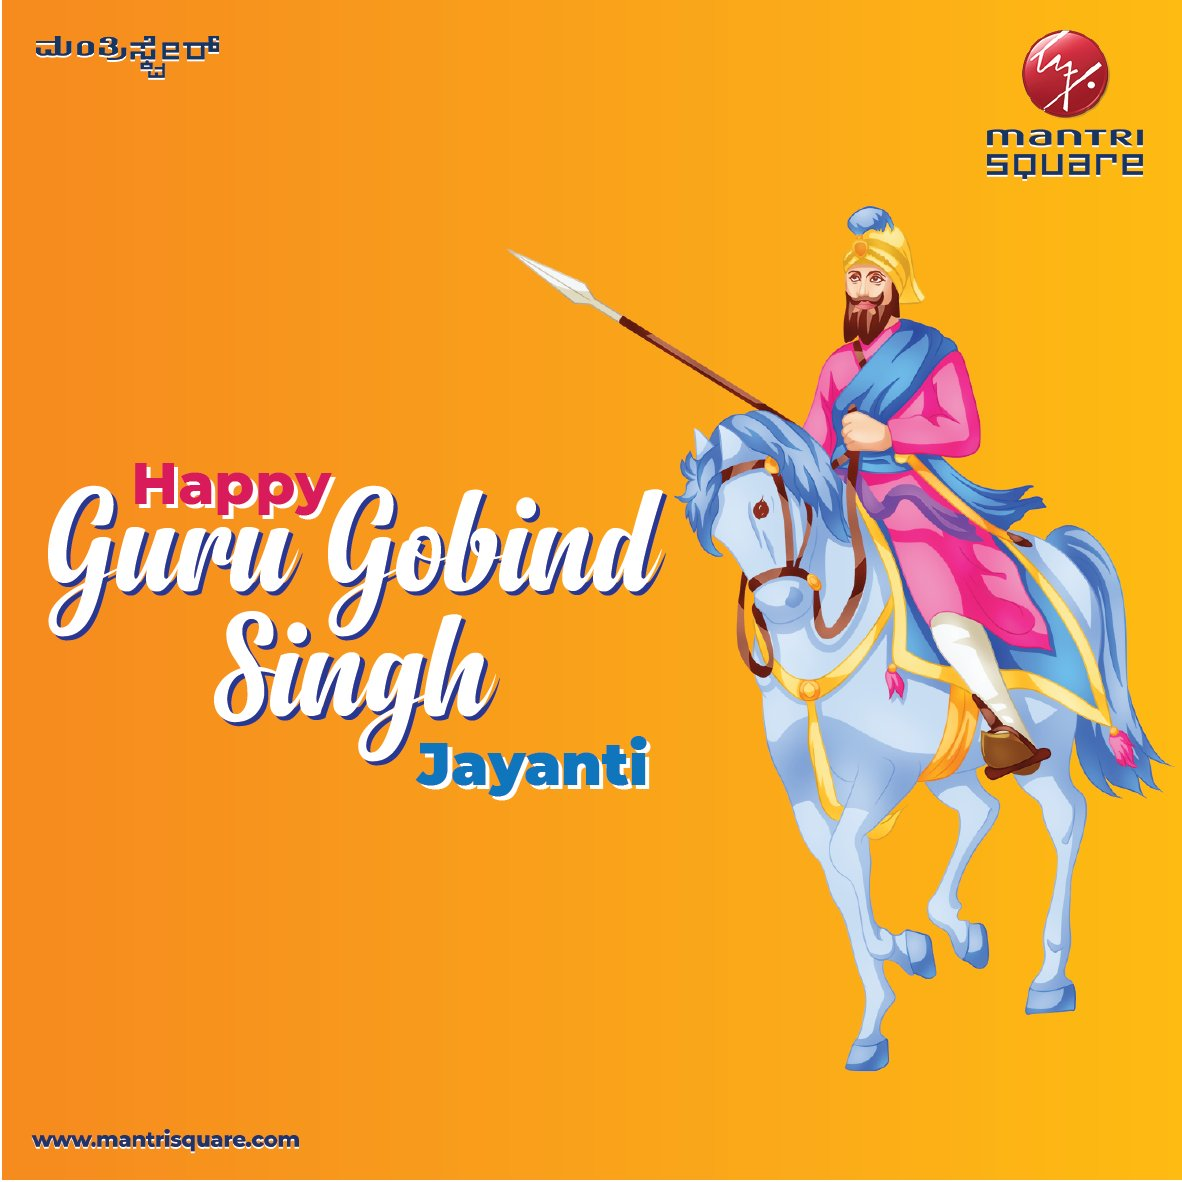 #MantriSquare wishes you all a very Happy #gurugobindsinghjayanti! Let's celebrate his stories of courage, valour, justice, cherish and emulate his values, bow to his sacrifices and spread happiness and cheer to all living beings.  #gurugobindsinghji #festivalsofindia #safety